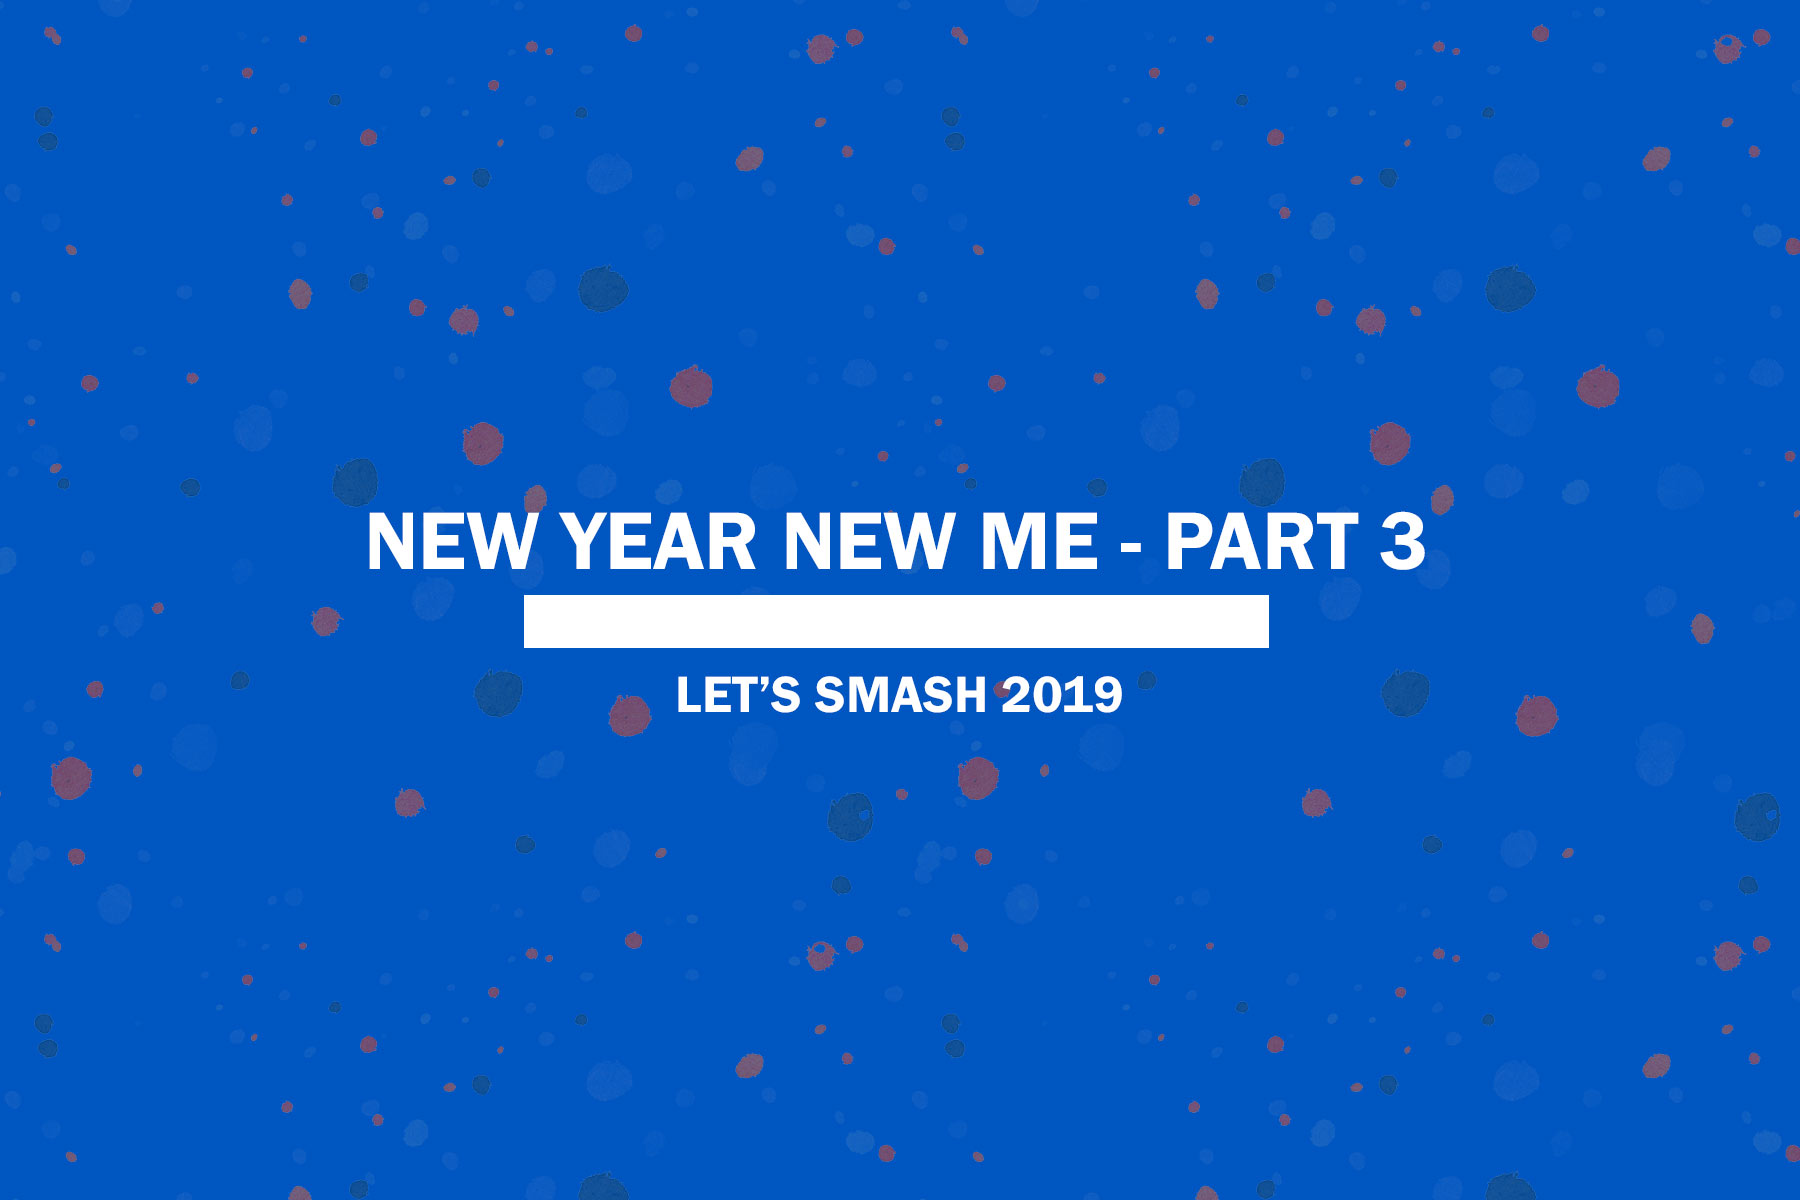 New Year New Me – Part 3